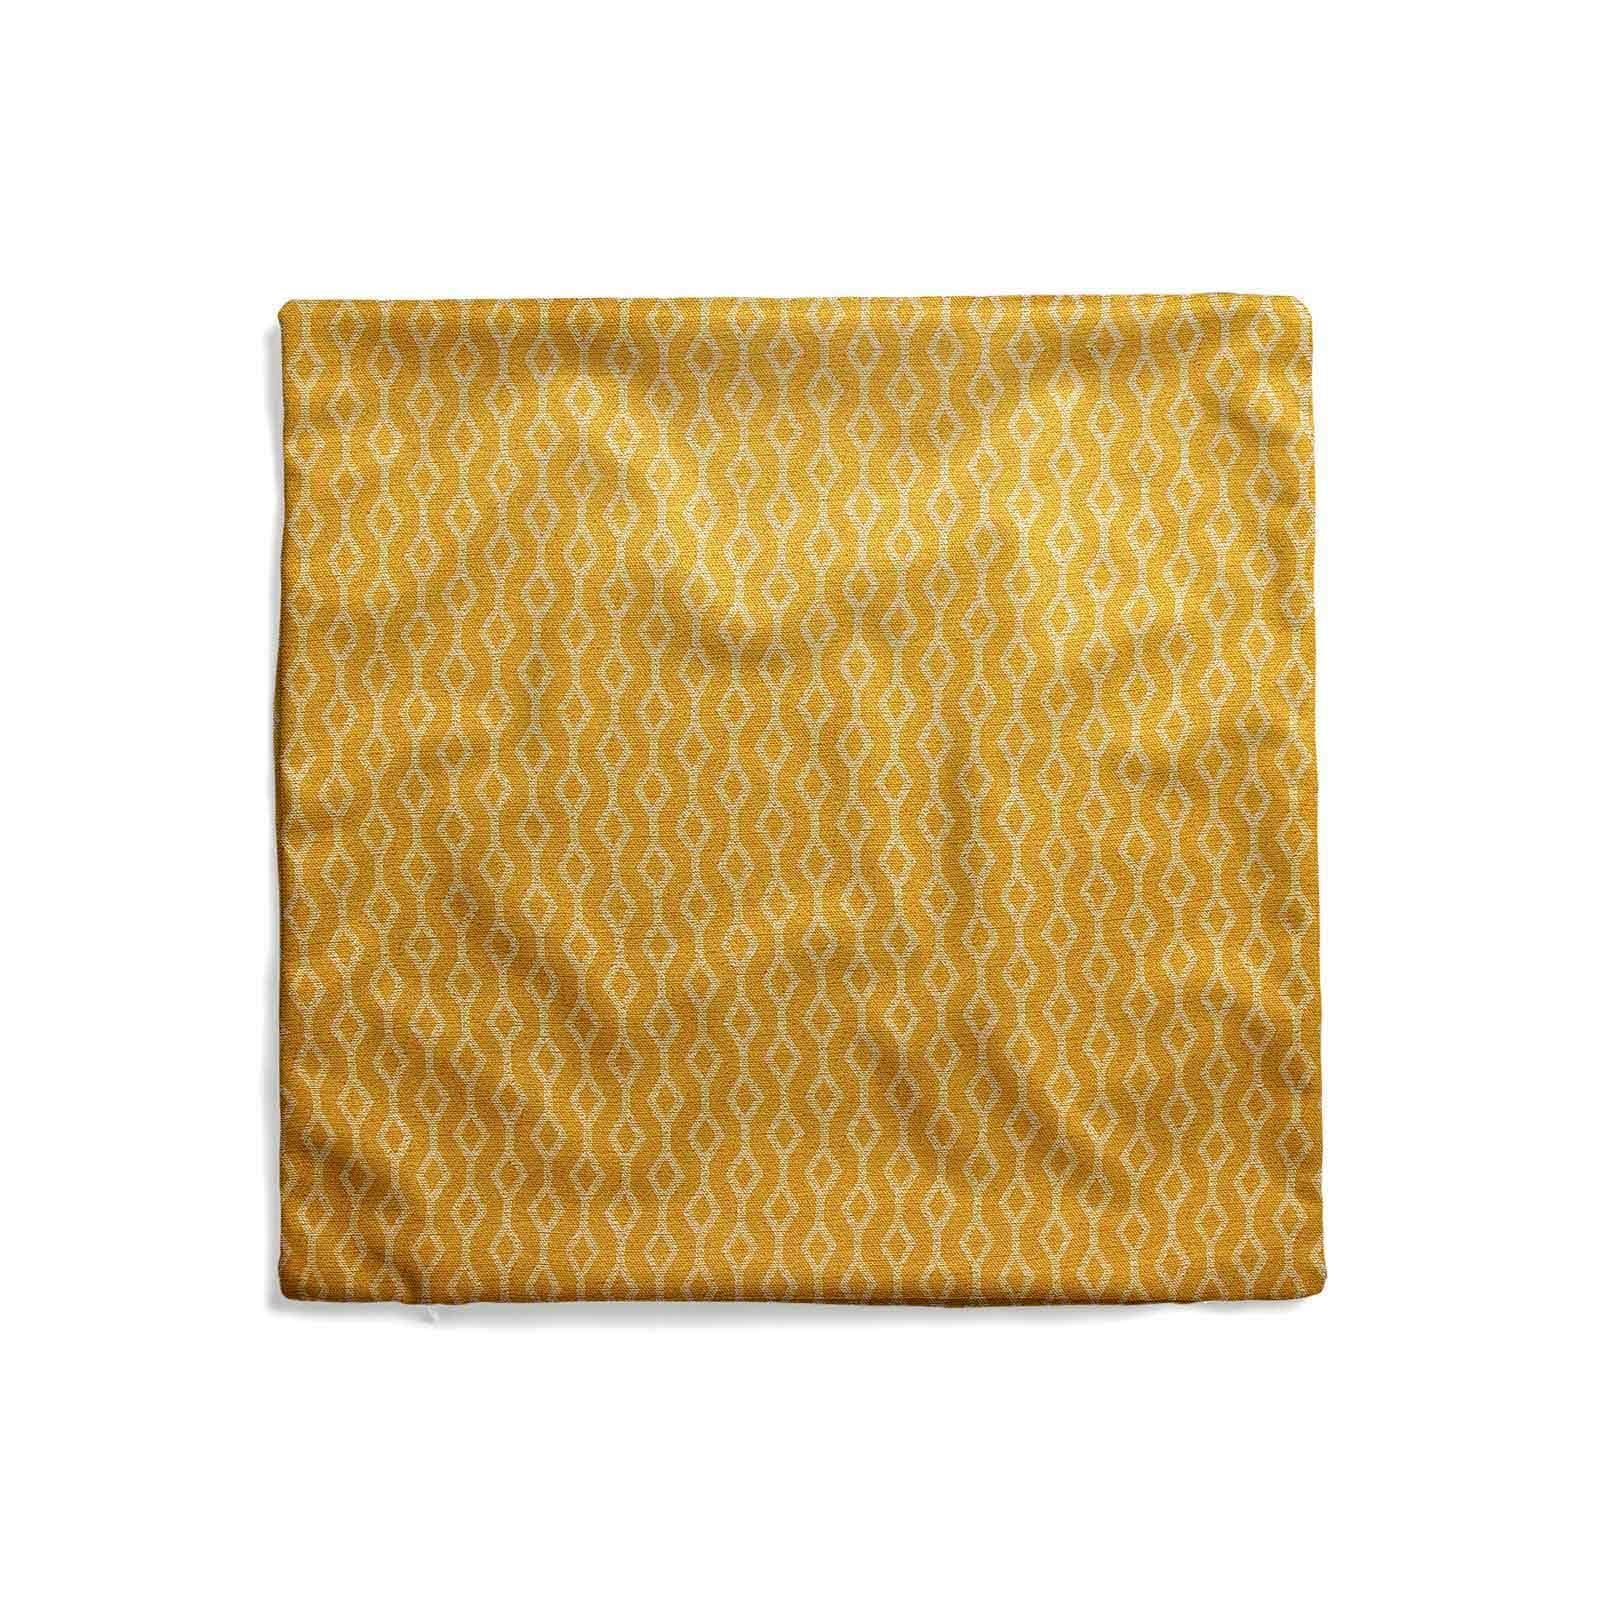 Grey-Ochre-Mustard-Cushion-Cover-Collection-17-034-18-034-Covers-Filled-Cushions thumbnail 88